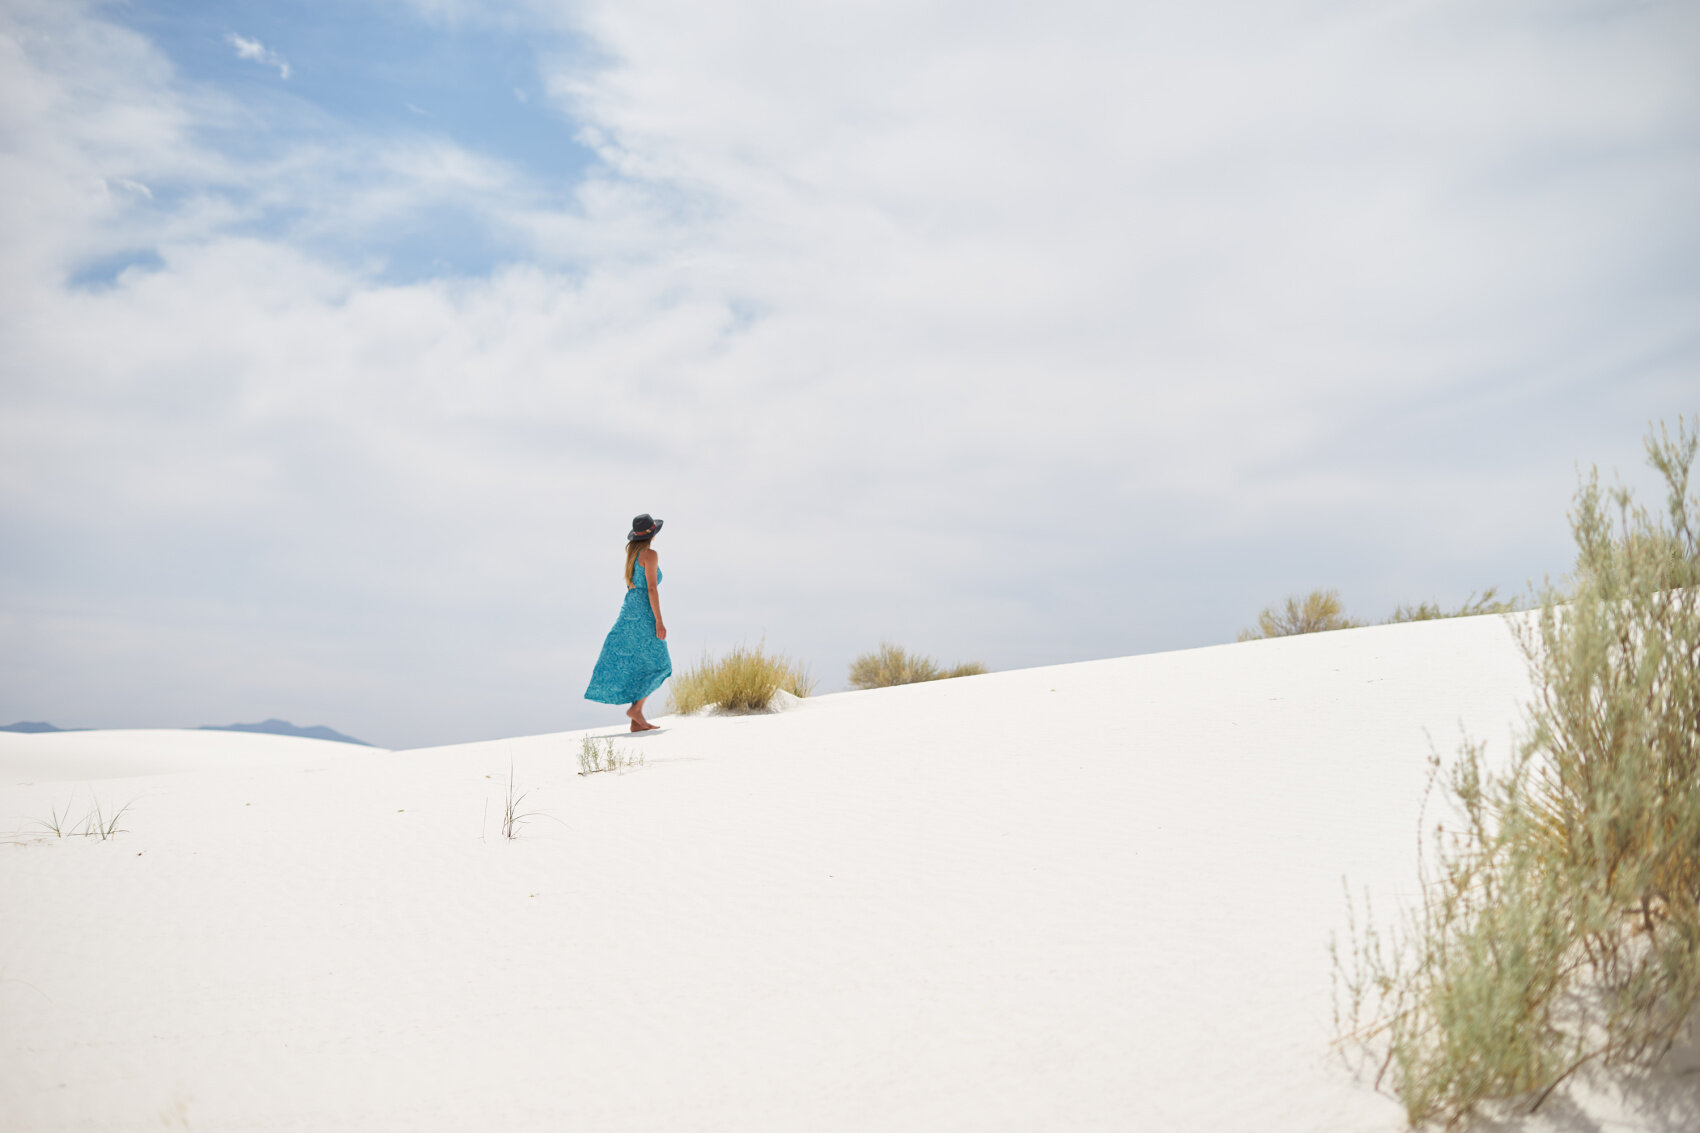 White Sand Dunes National Monument - your guide to planning a trip by Amanda Outside. Click through for information on the best time to visit, the hiking trails, how to get backcountry camping permits, and other fun things to do like sledding! www.amandaoutside.com